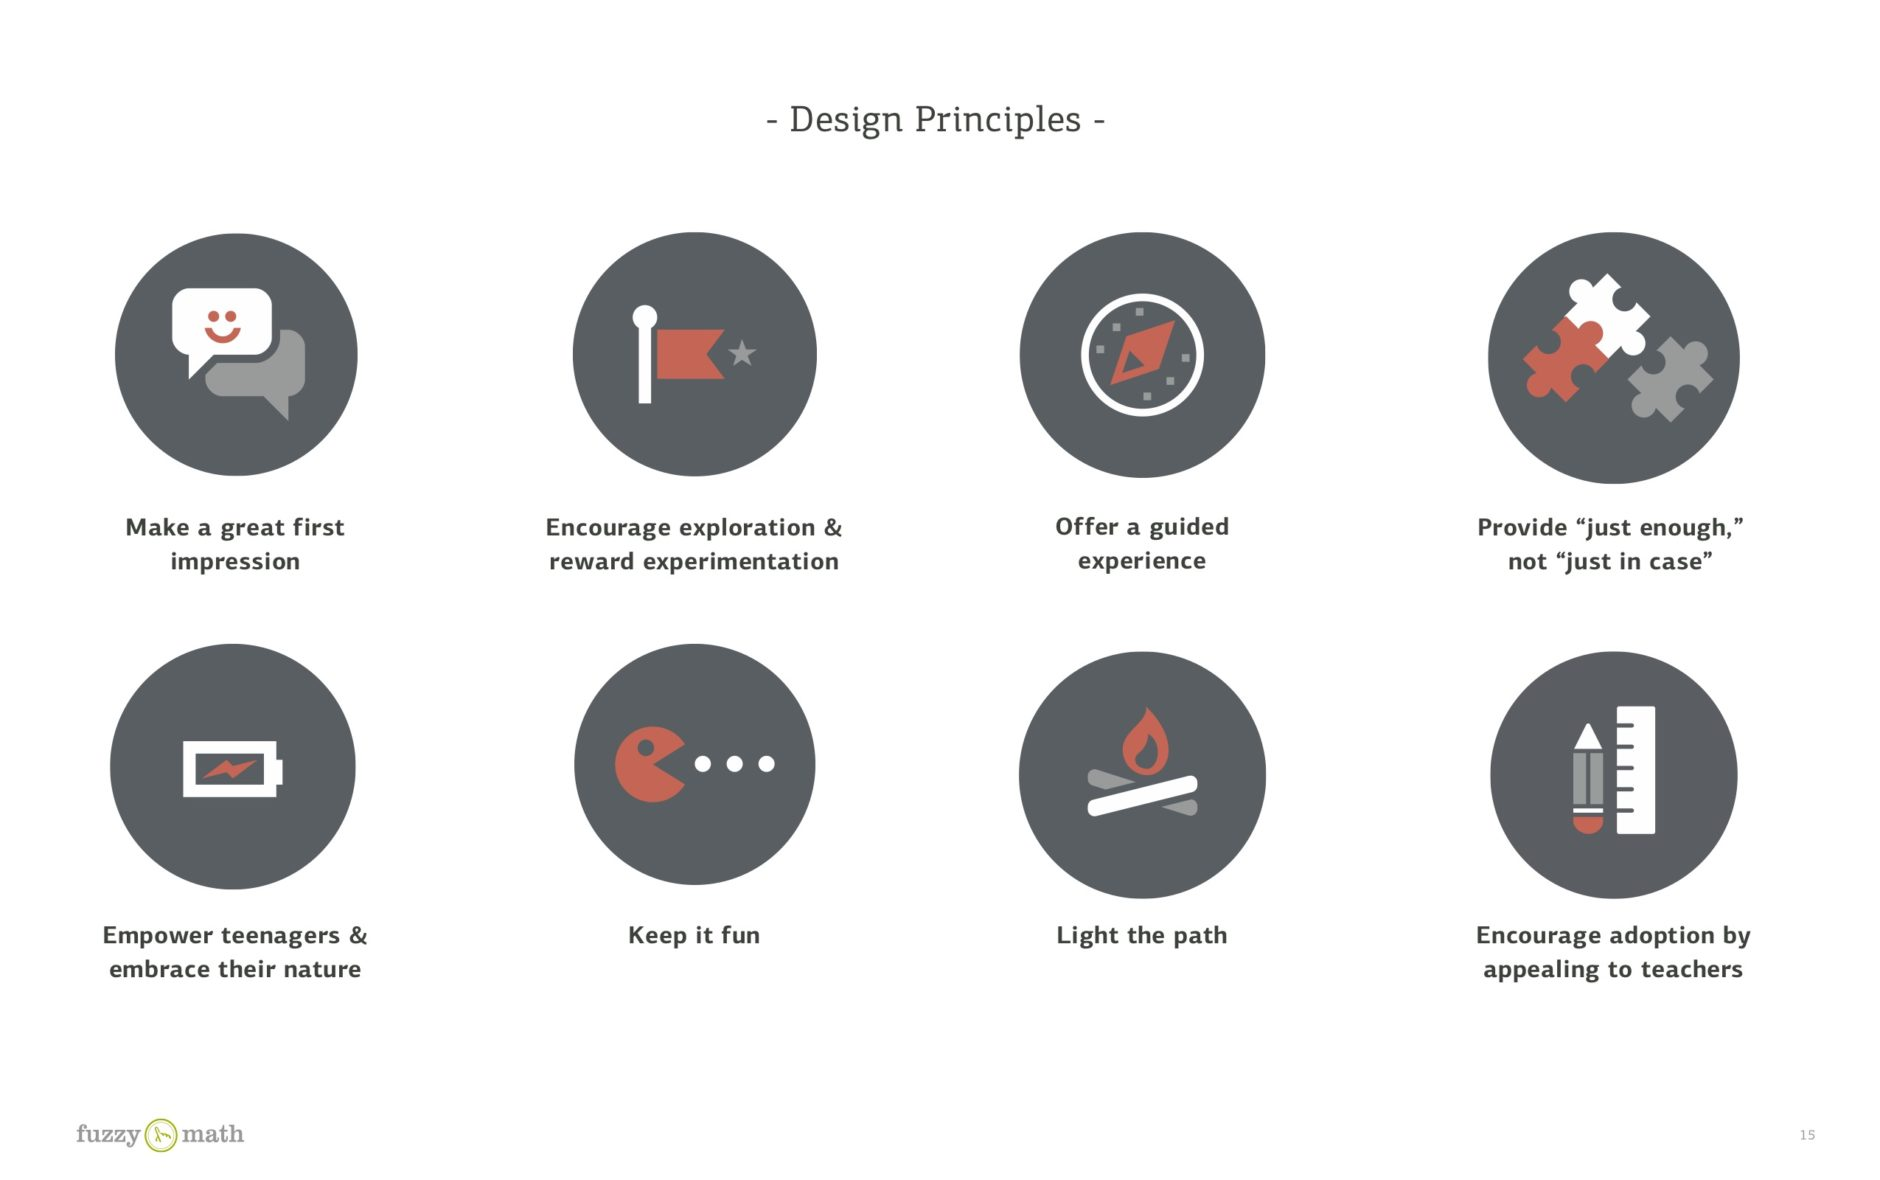 A list of 8 design principles with associated illustrations.